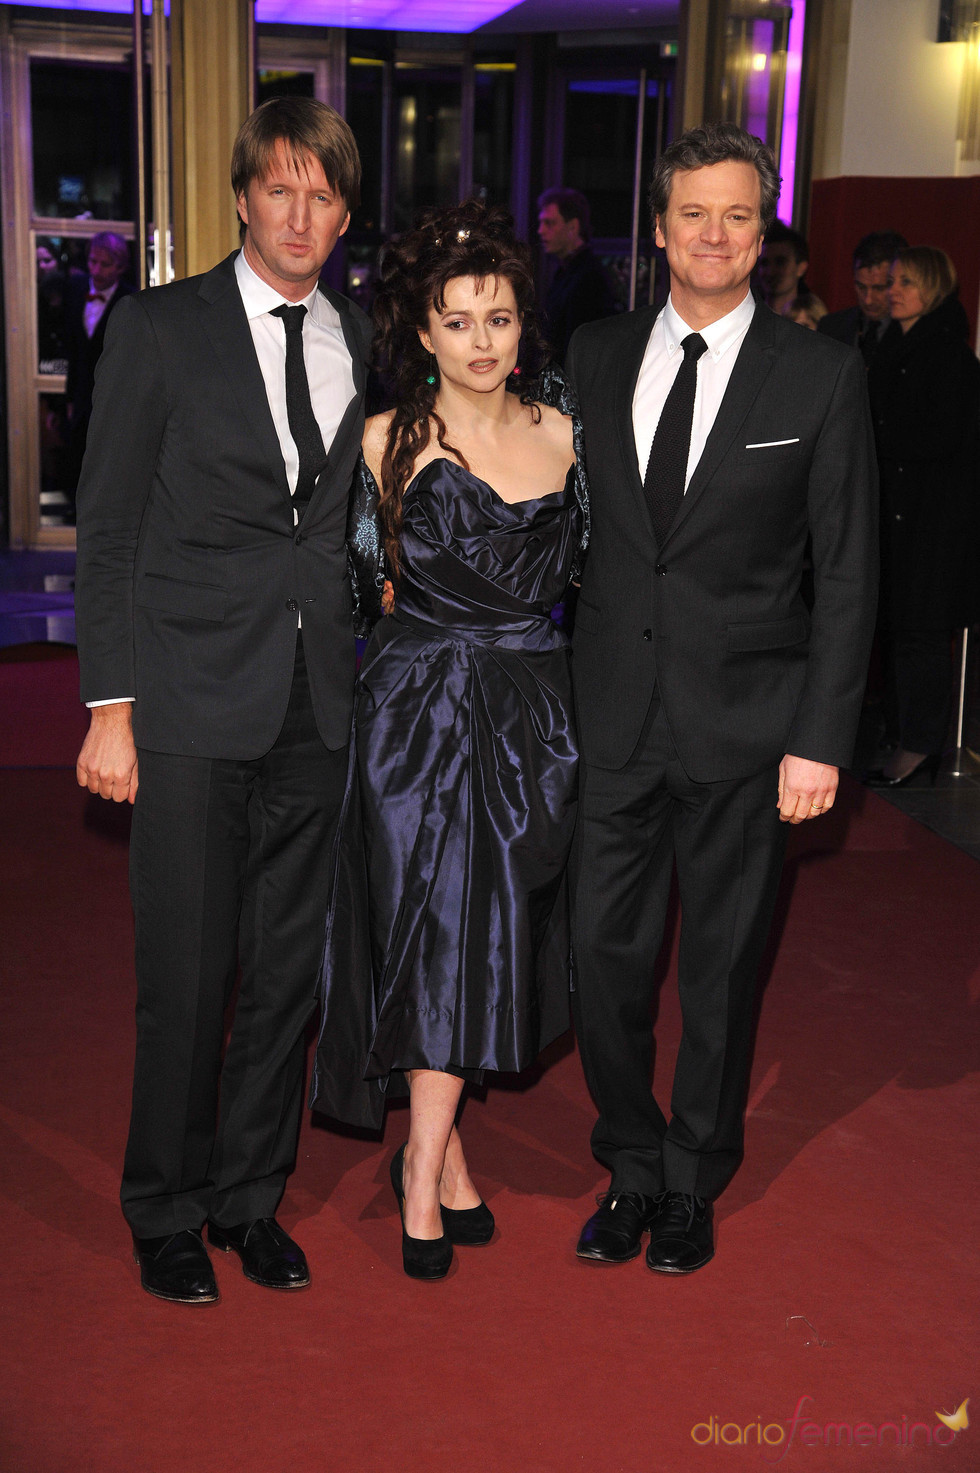 Tom Hooper, Colin Firth y Helena Bonham Carter en la Berlinale